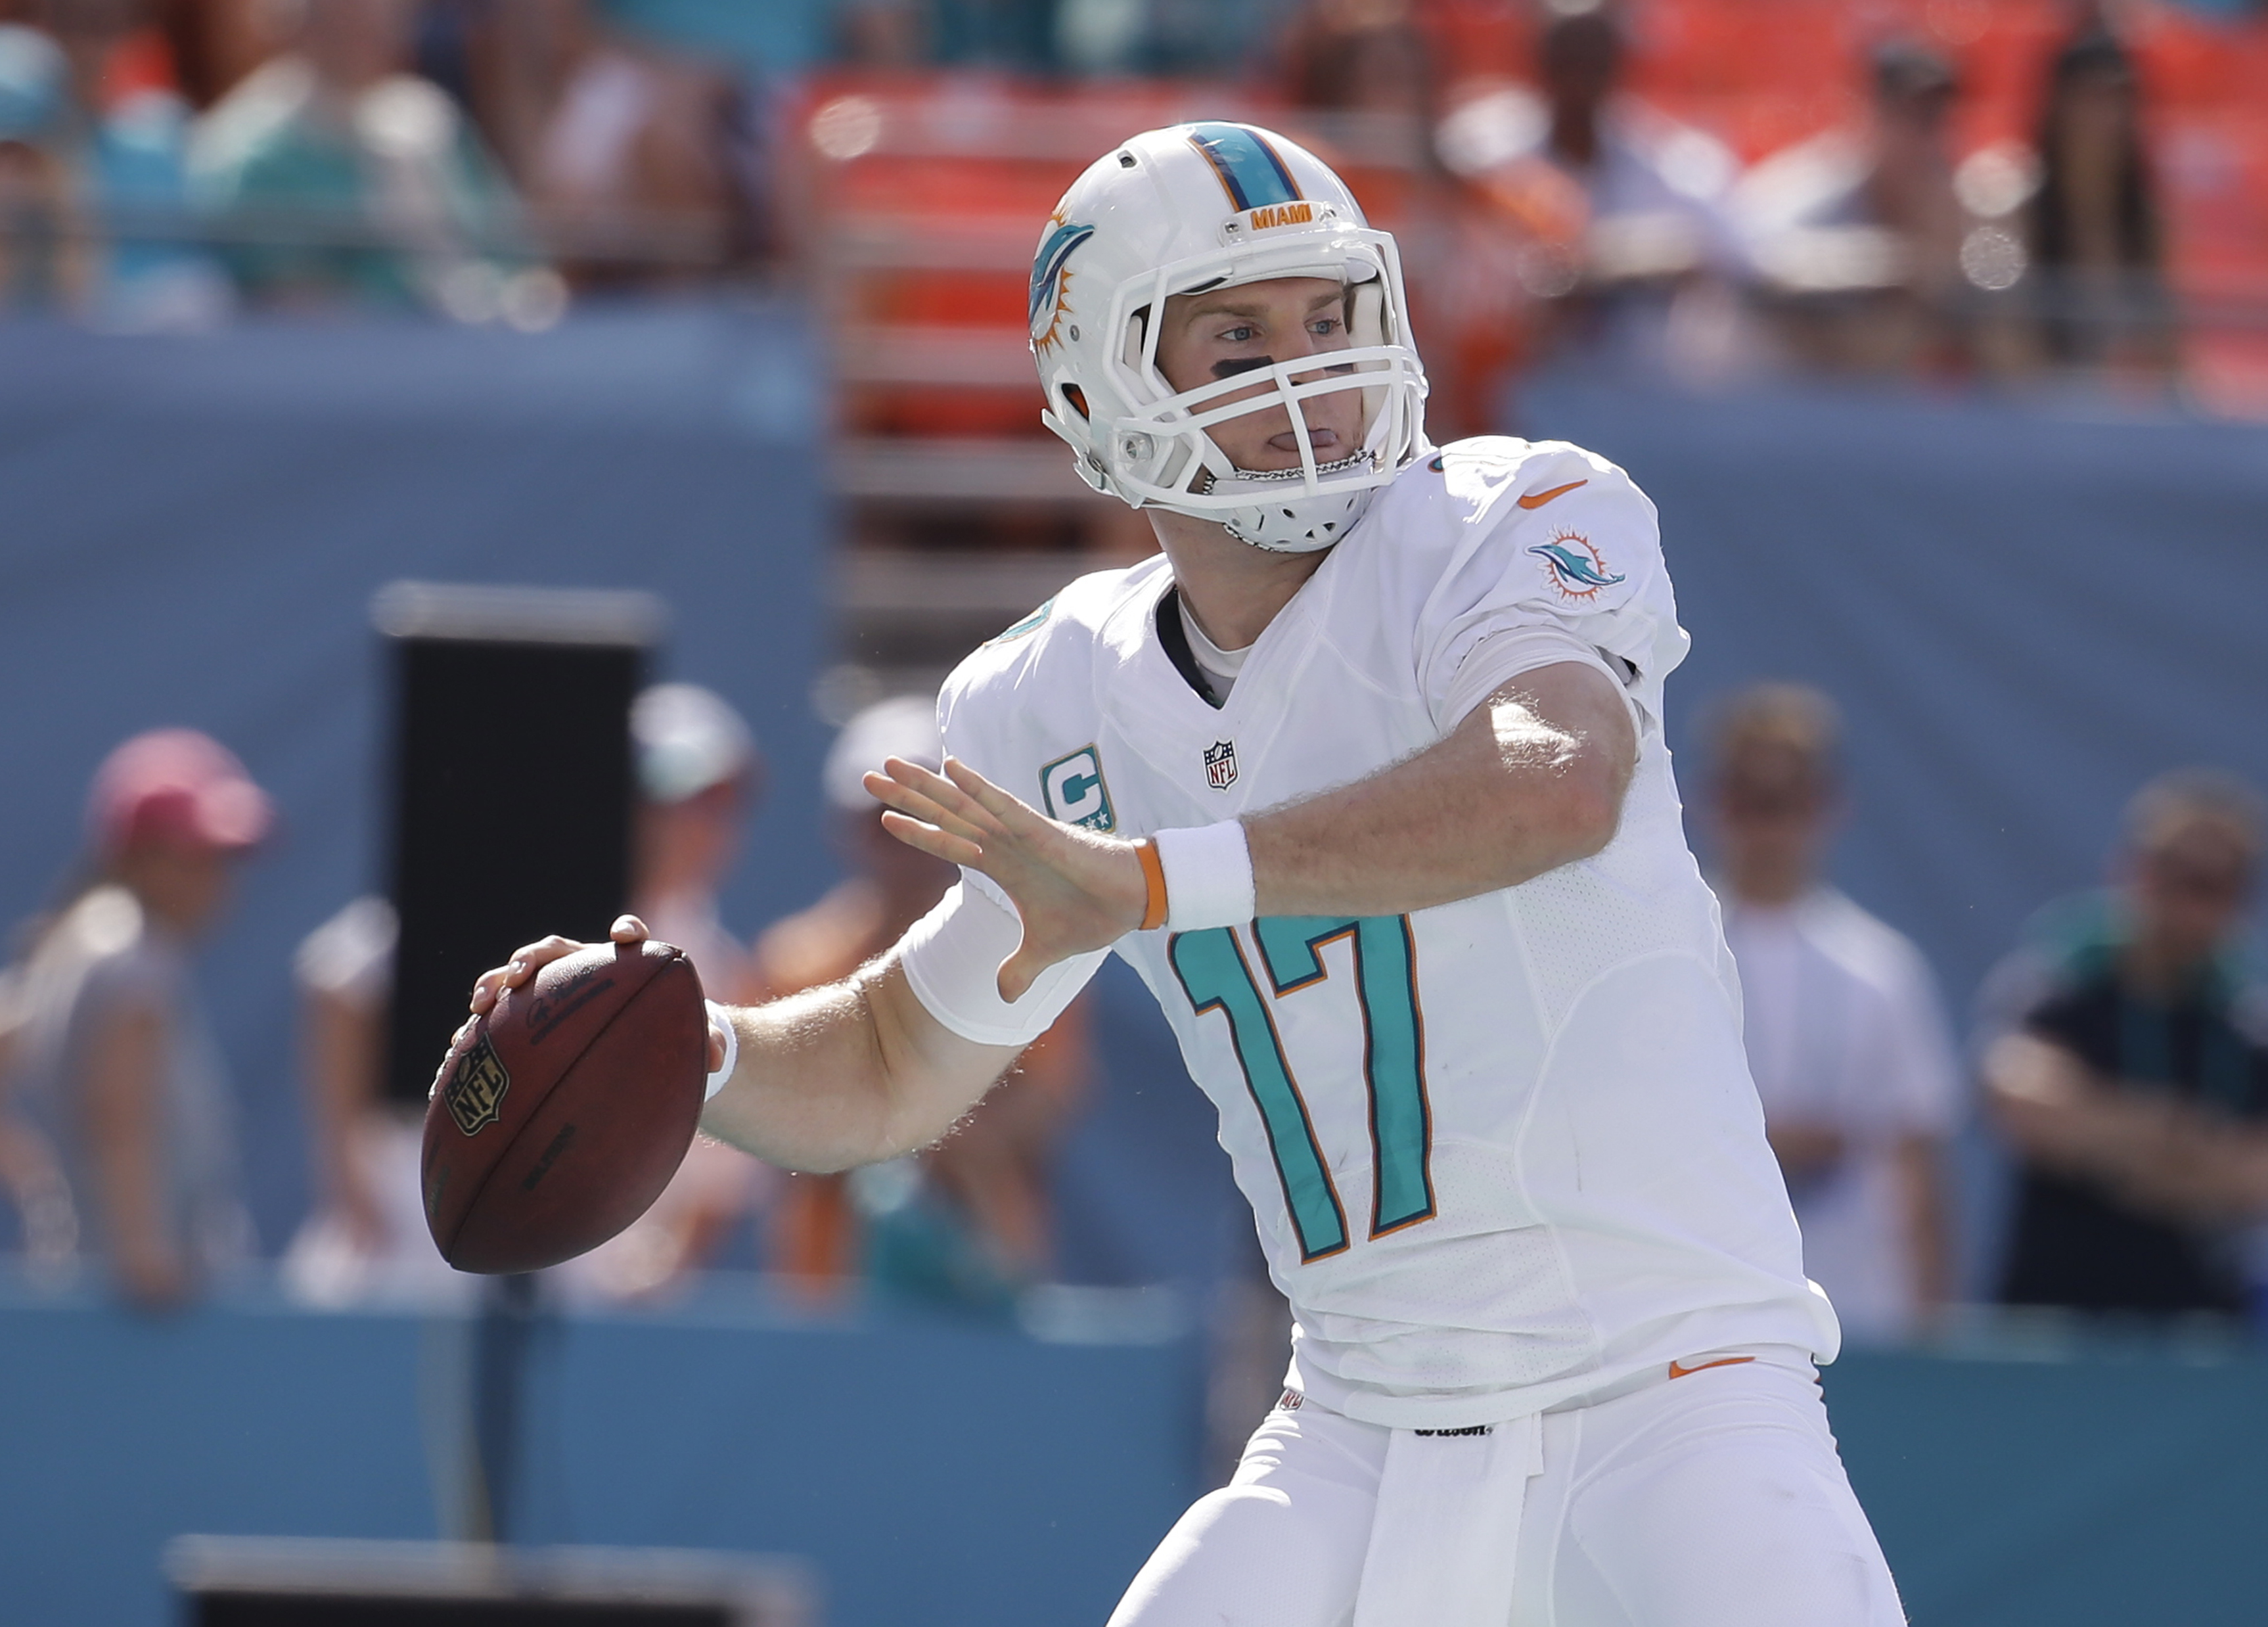 FILE - In this Dec. 28, 2014, file photo, Miami Dolphins quarterback Ryan Tannehill (17) looks to pass during the first half of an NFL football game against the New York Jets in Miami Gardens, Fla. Tannehill stopped the Dolphins' revolving door at quarter